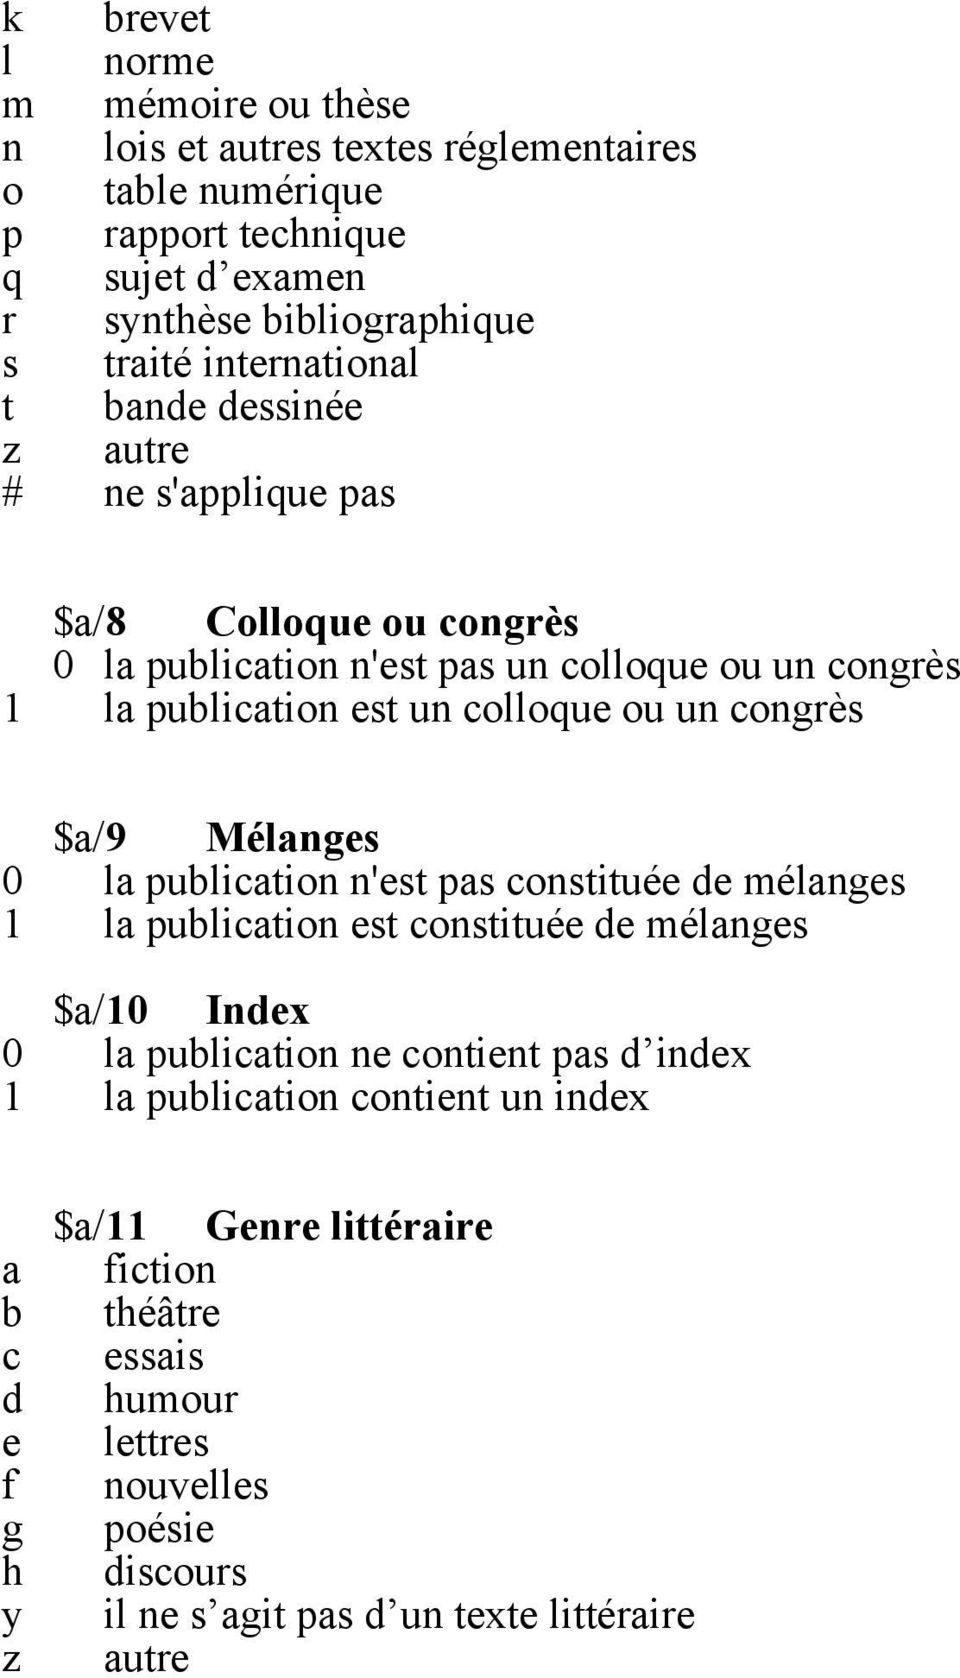 ongrès $/9 Mélnges 0 l plition n'est ps onstitée de mélnges 1 l plition est onstitée de mélnges $/10 Index 0 l plition ne ontient ps d index 1 l